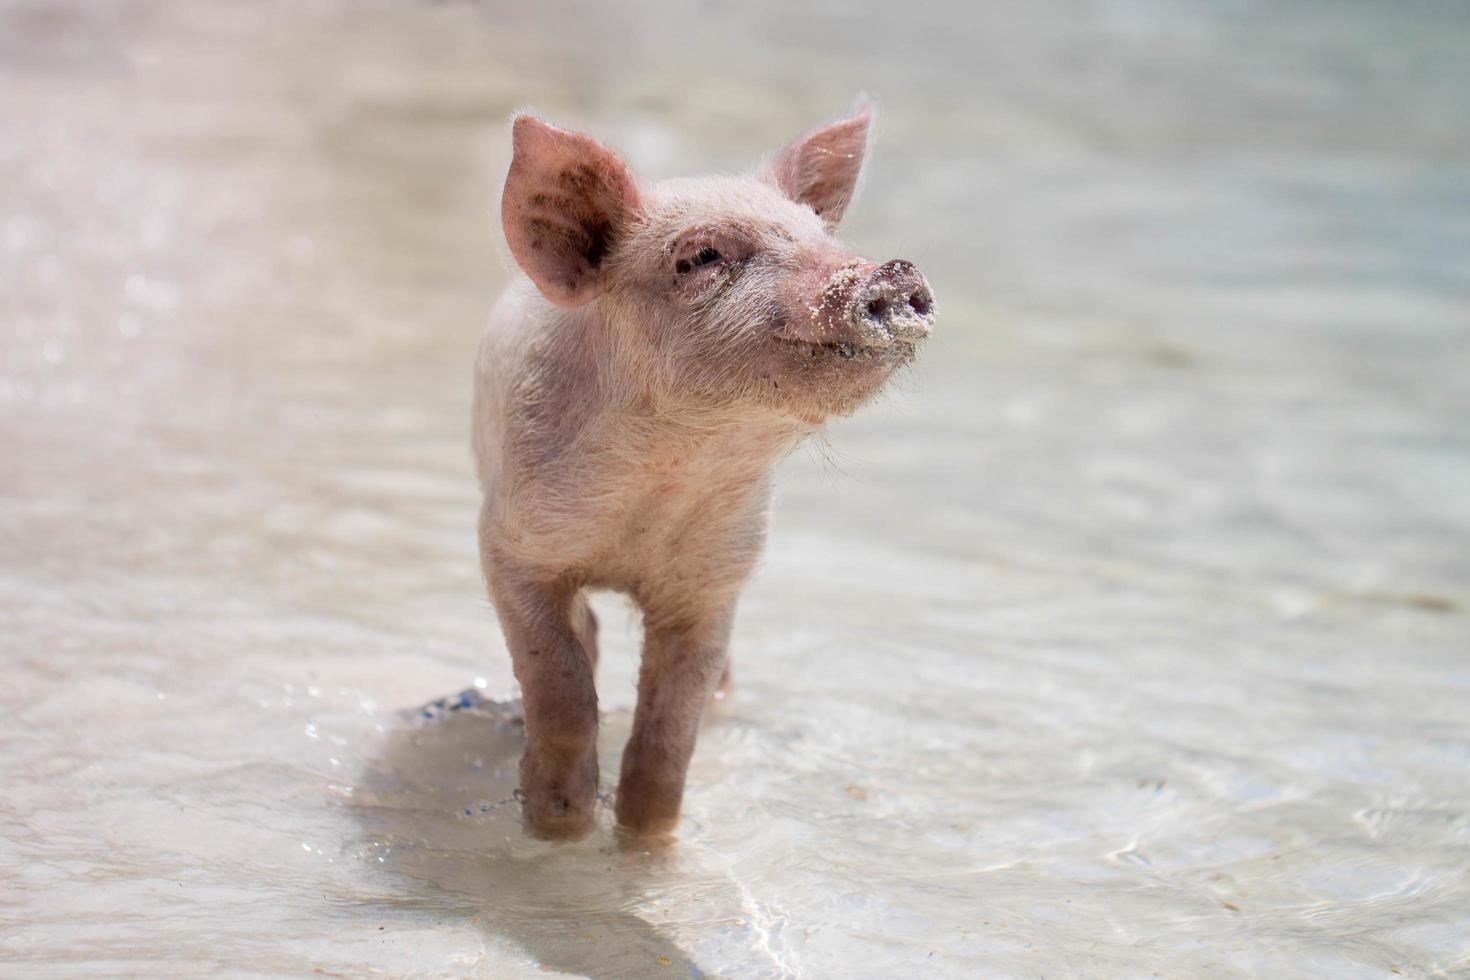 Piglet playing in water photo